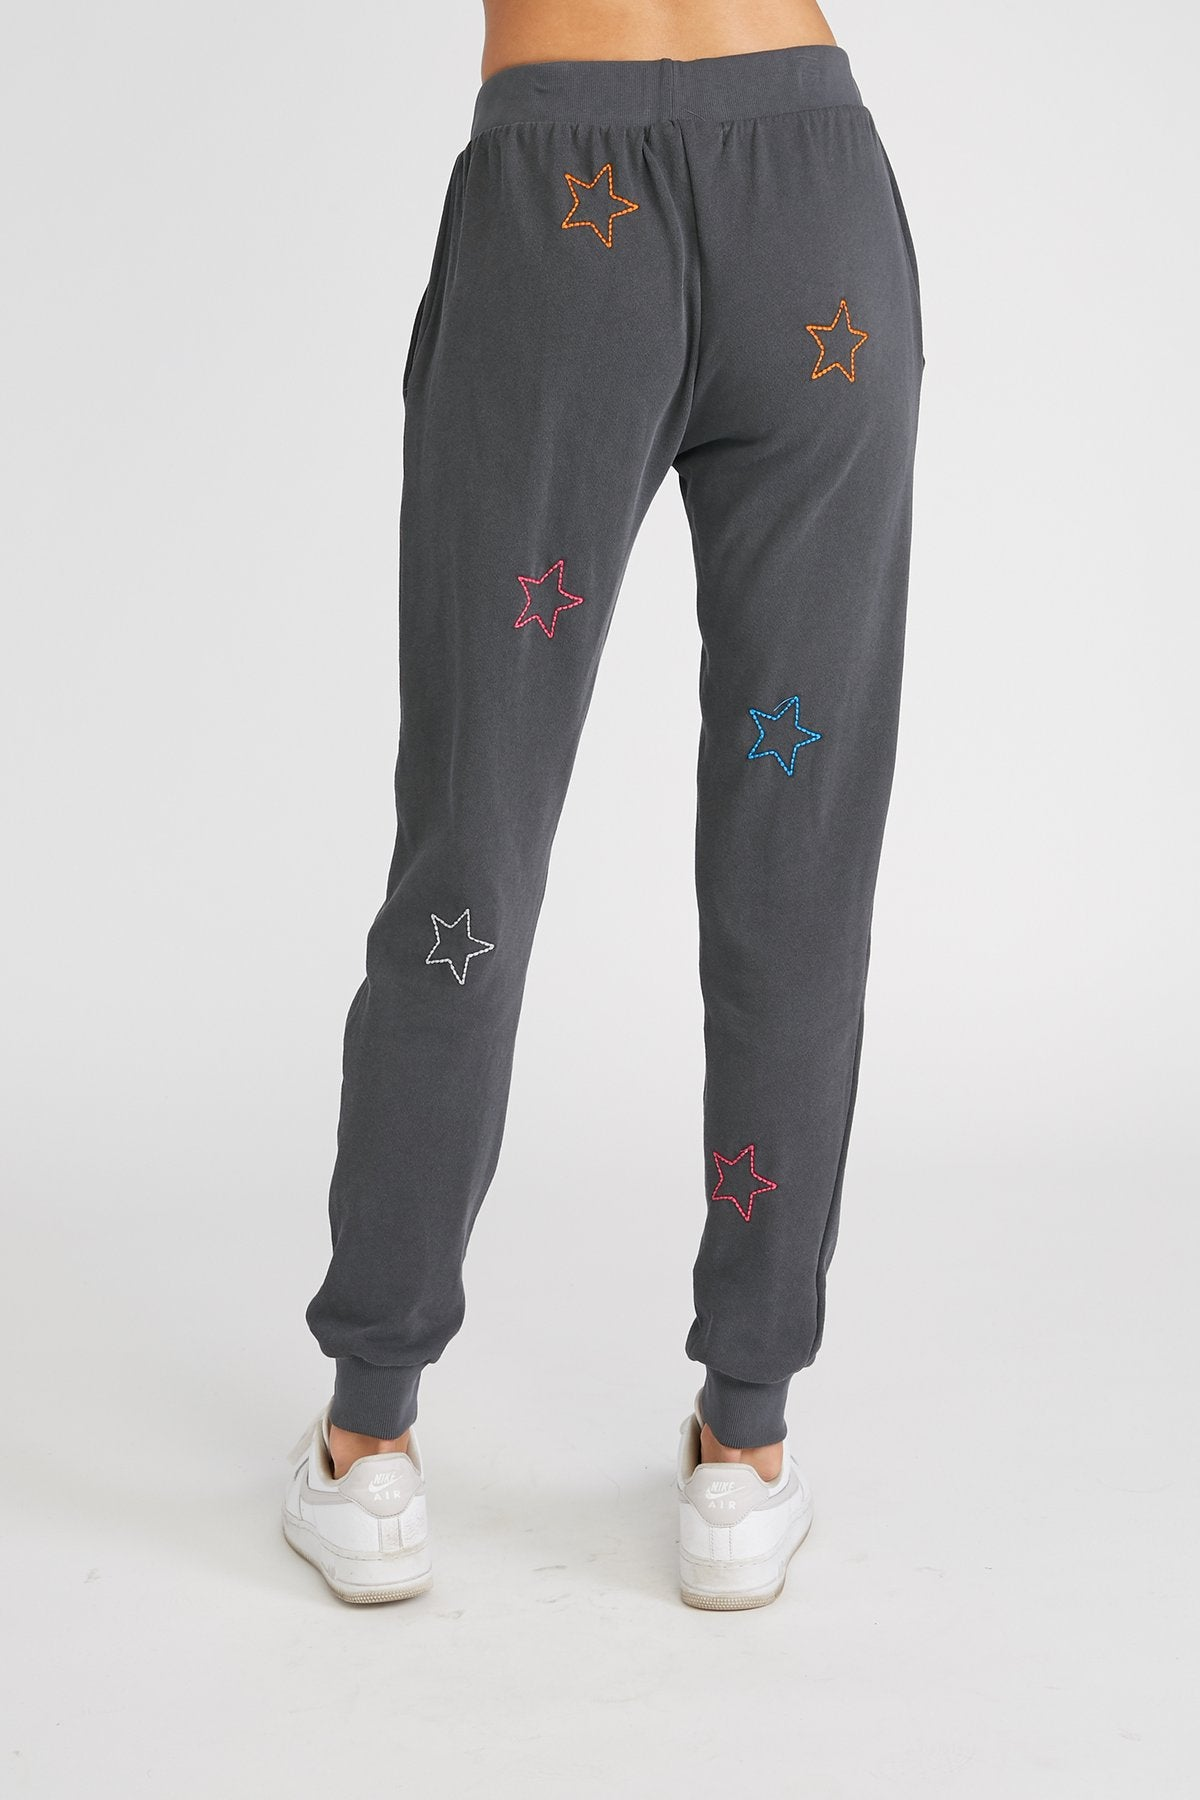 CHRLDR Color Stars Flat Pocket Sweatpants - Vintage Black